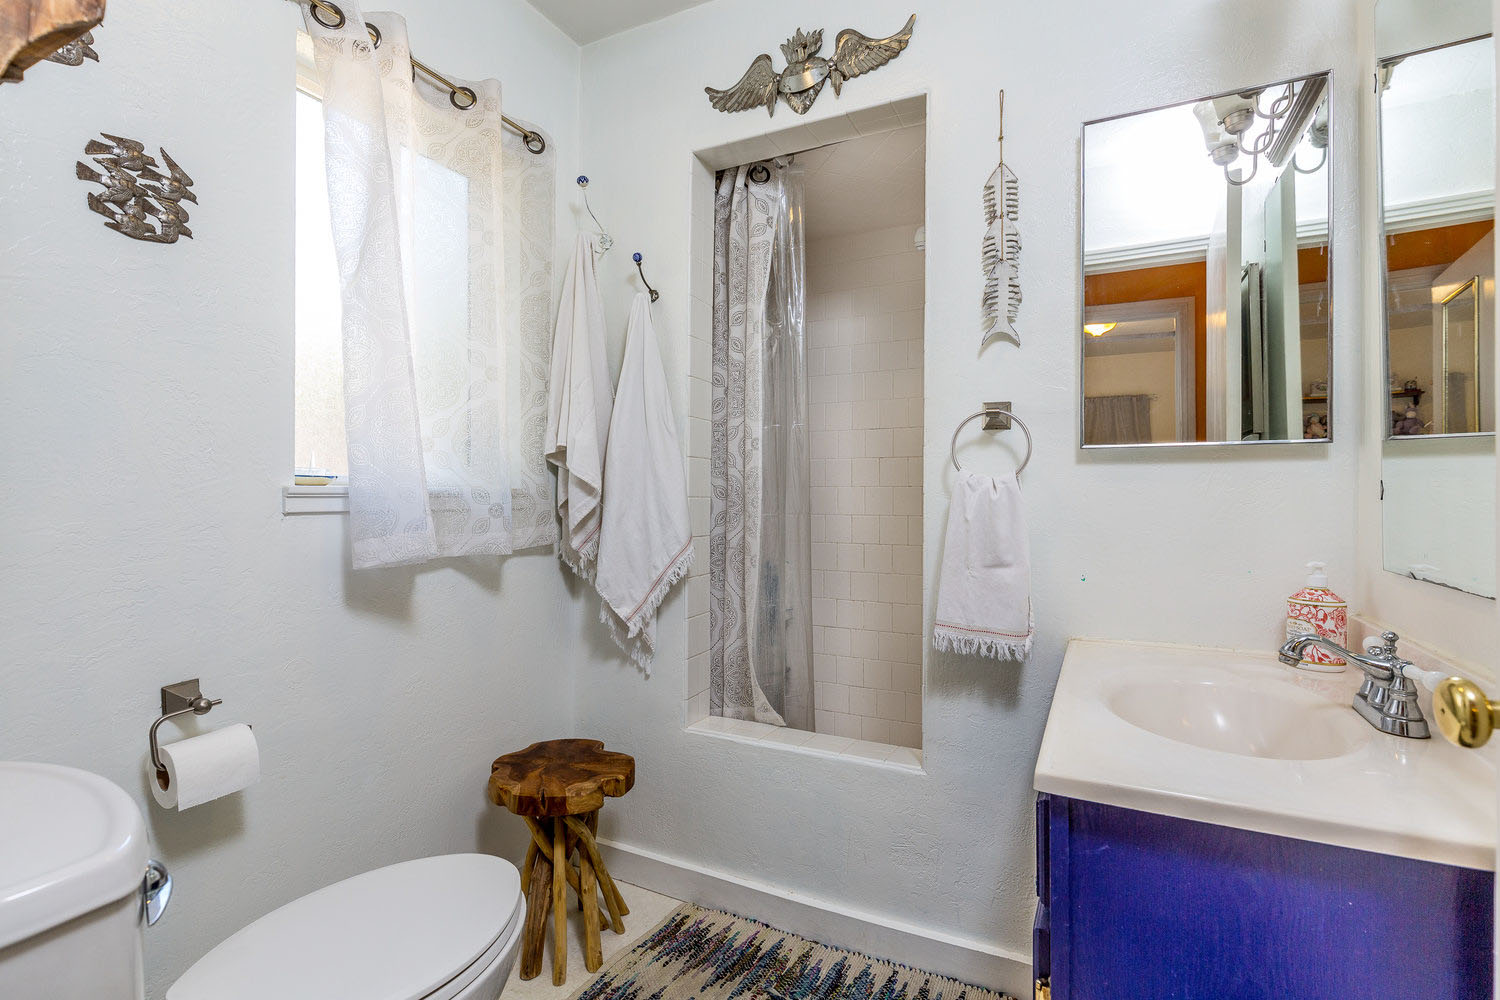 Two Bedroom 1 Bathroom Home For Sale